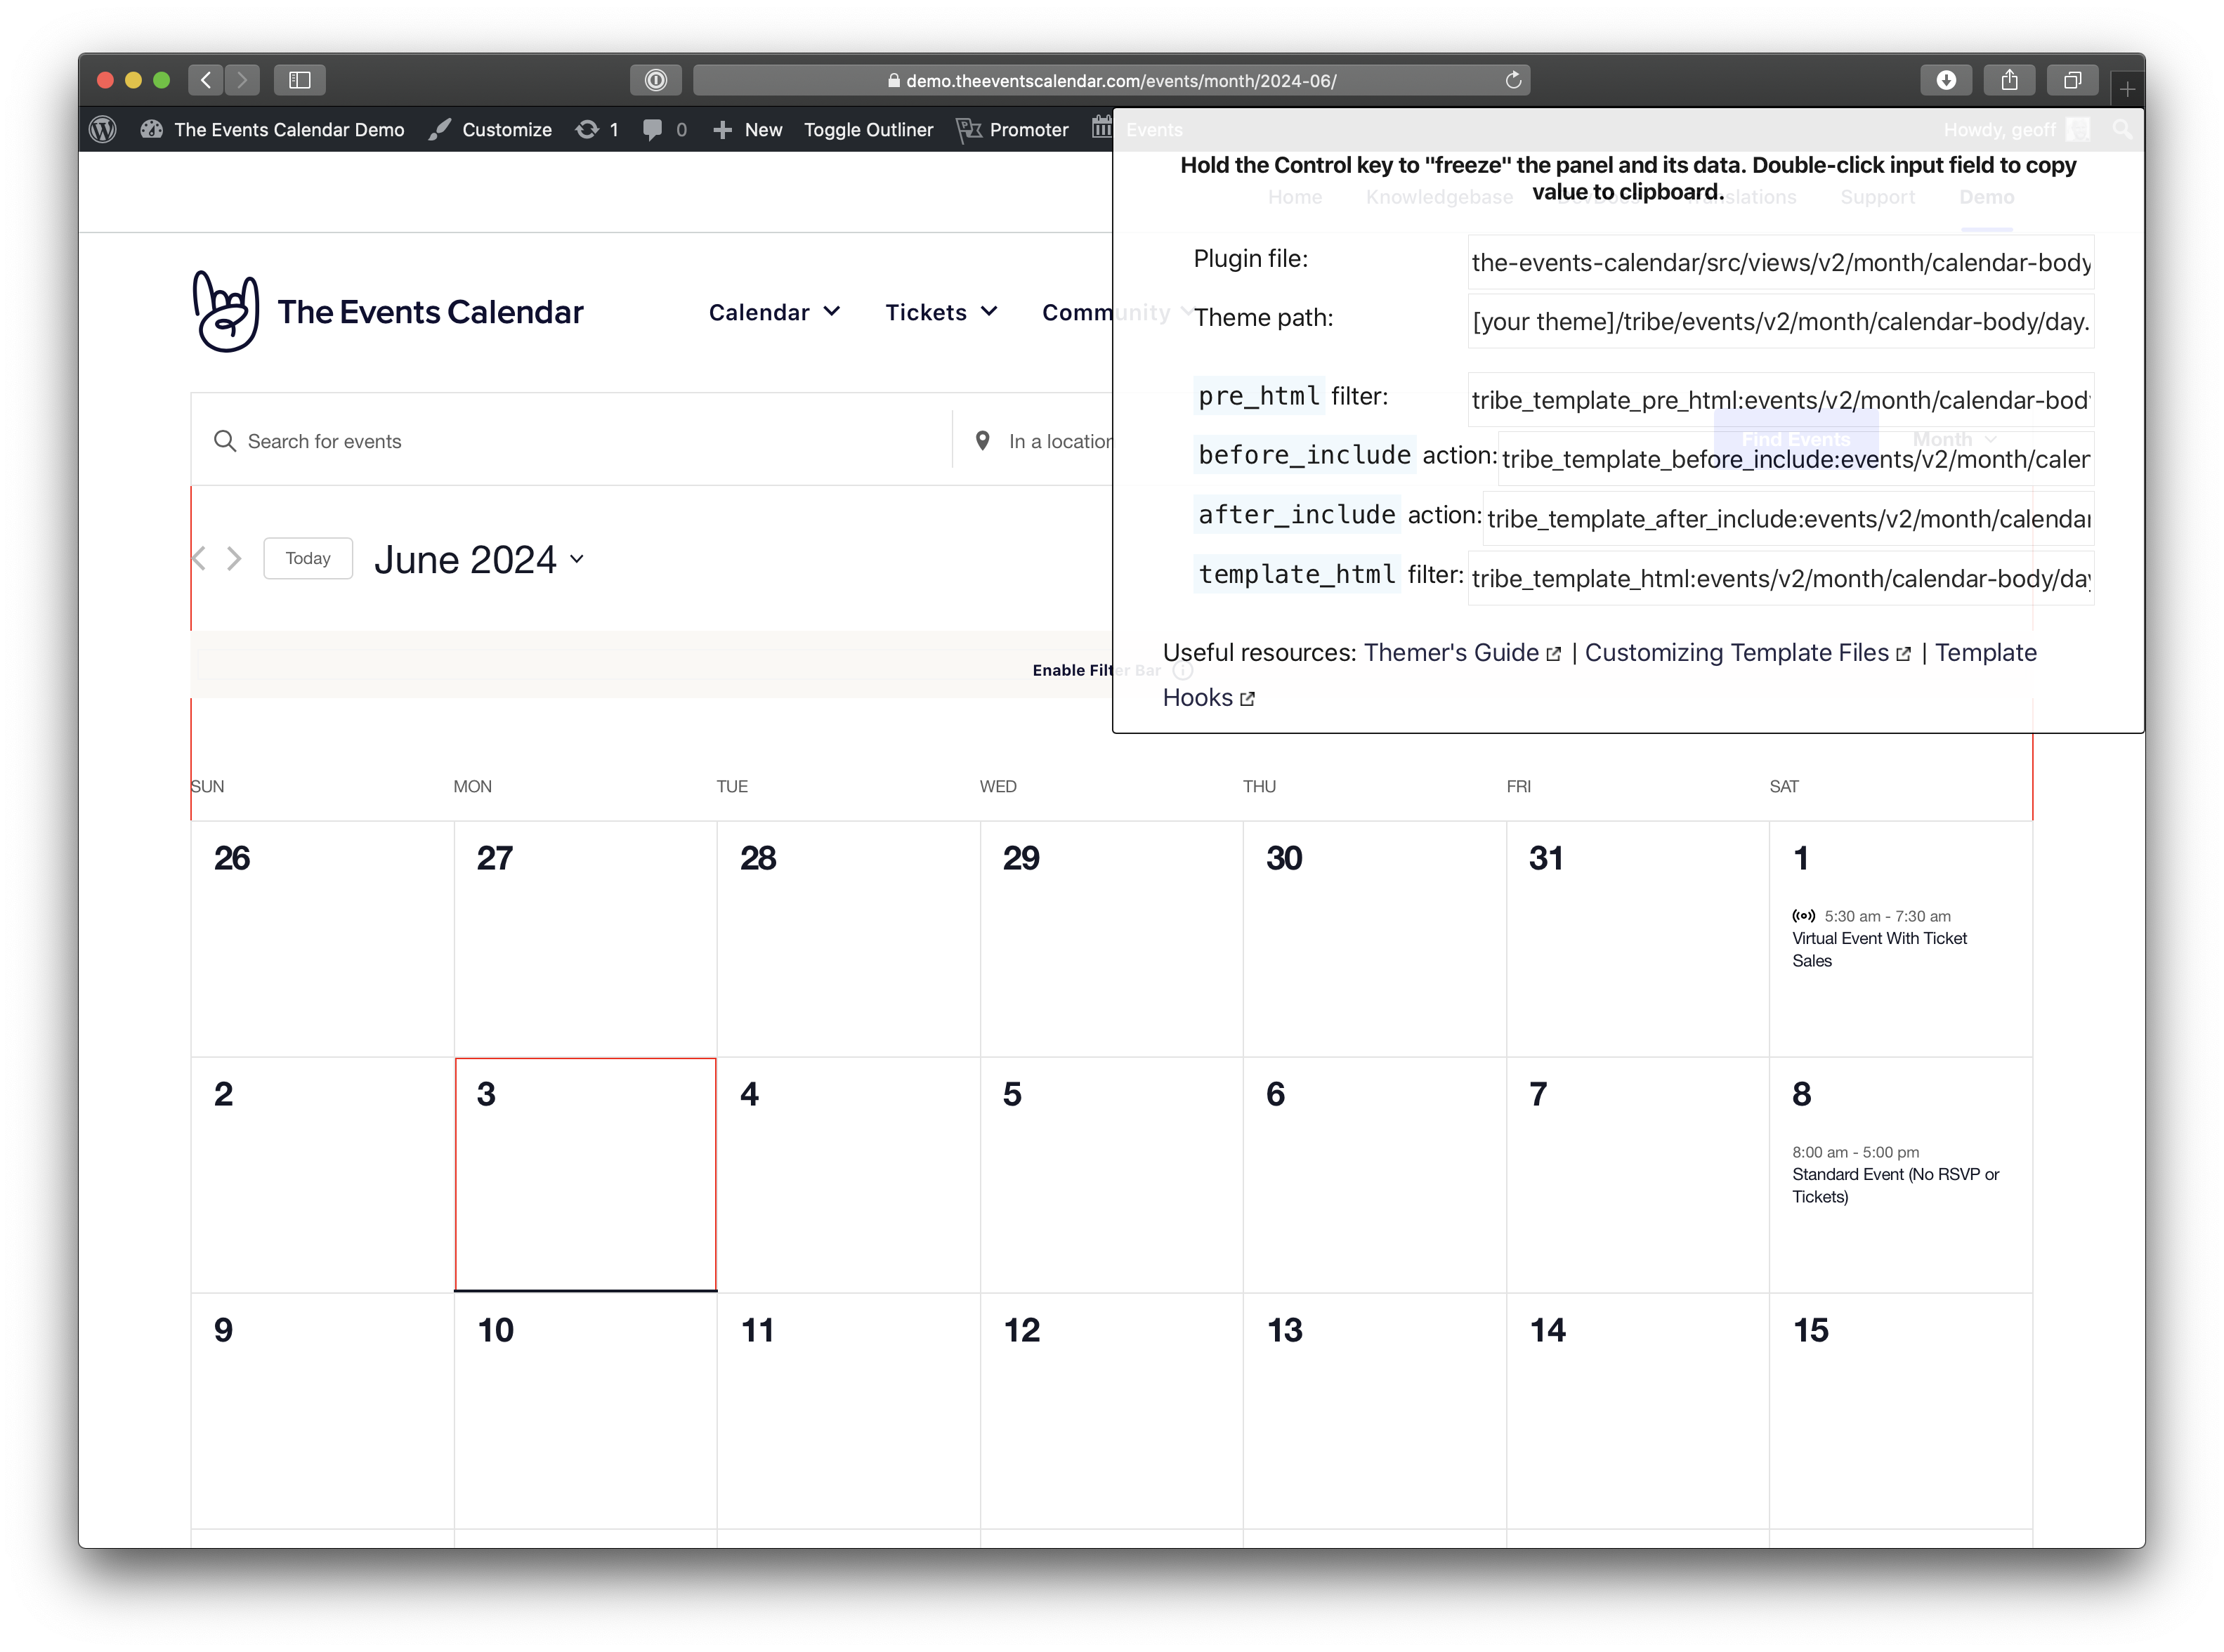 Screenshot of the calendar month view on June 2024 with the third day in the month outlined in red indicating it is being hovered. Documentation is displayed in the top-right corner of the screen.